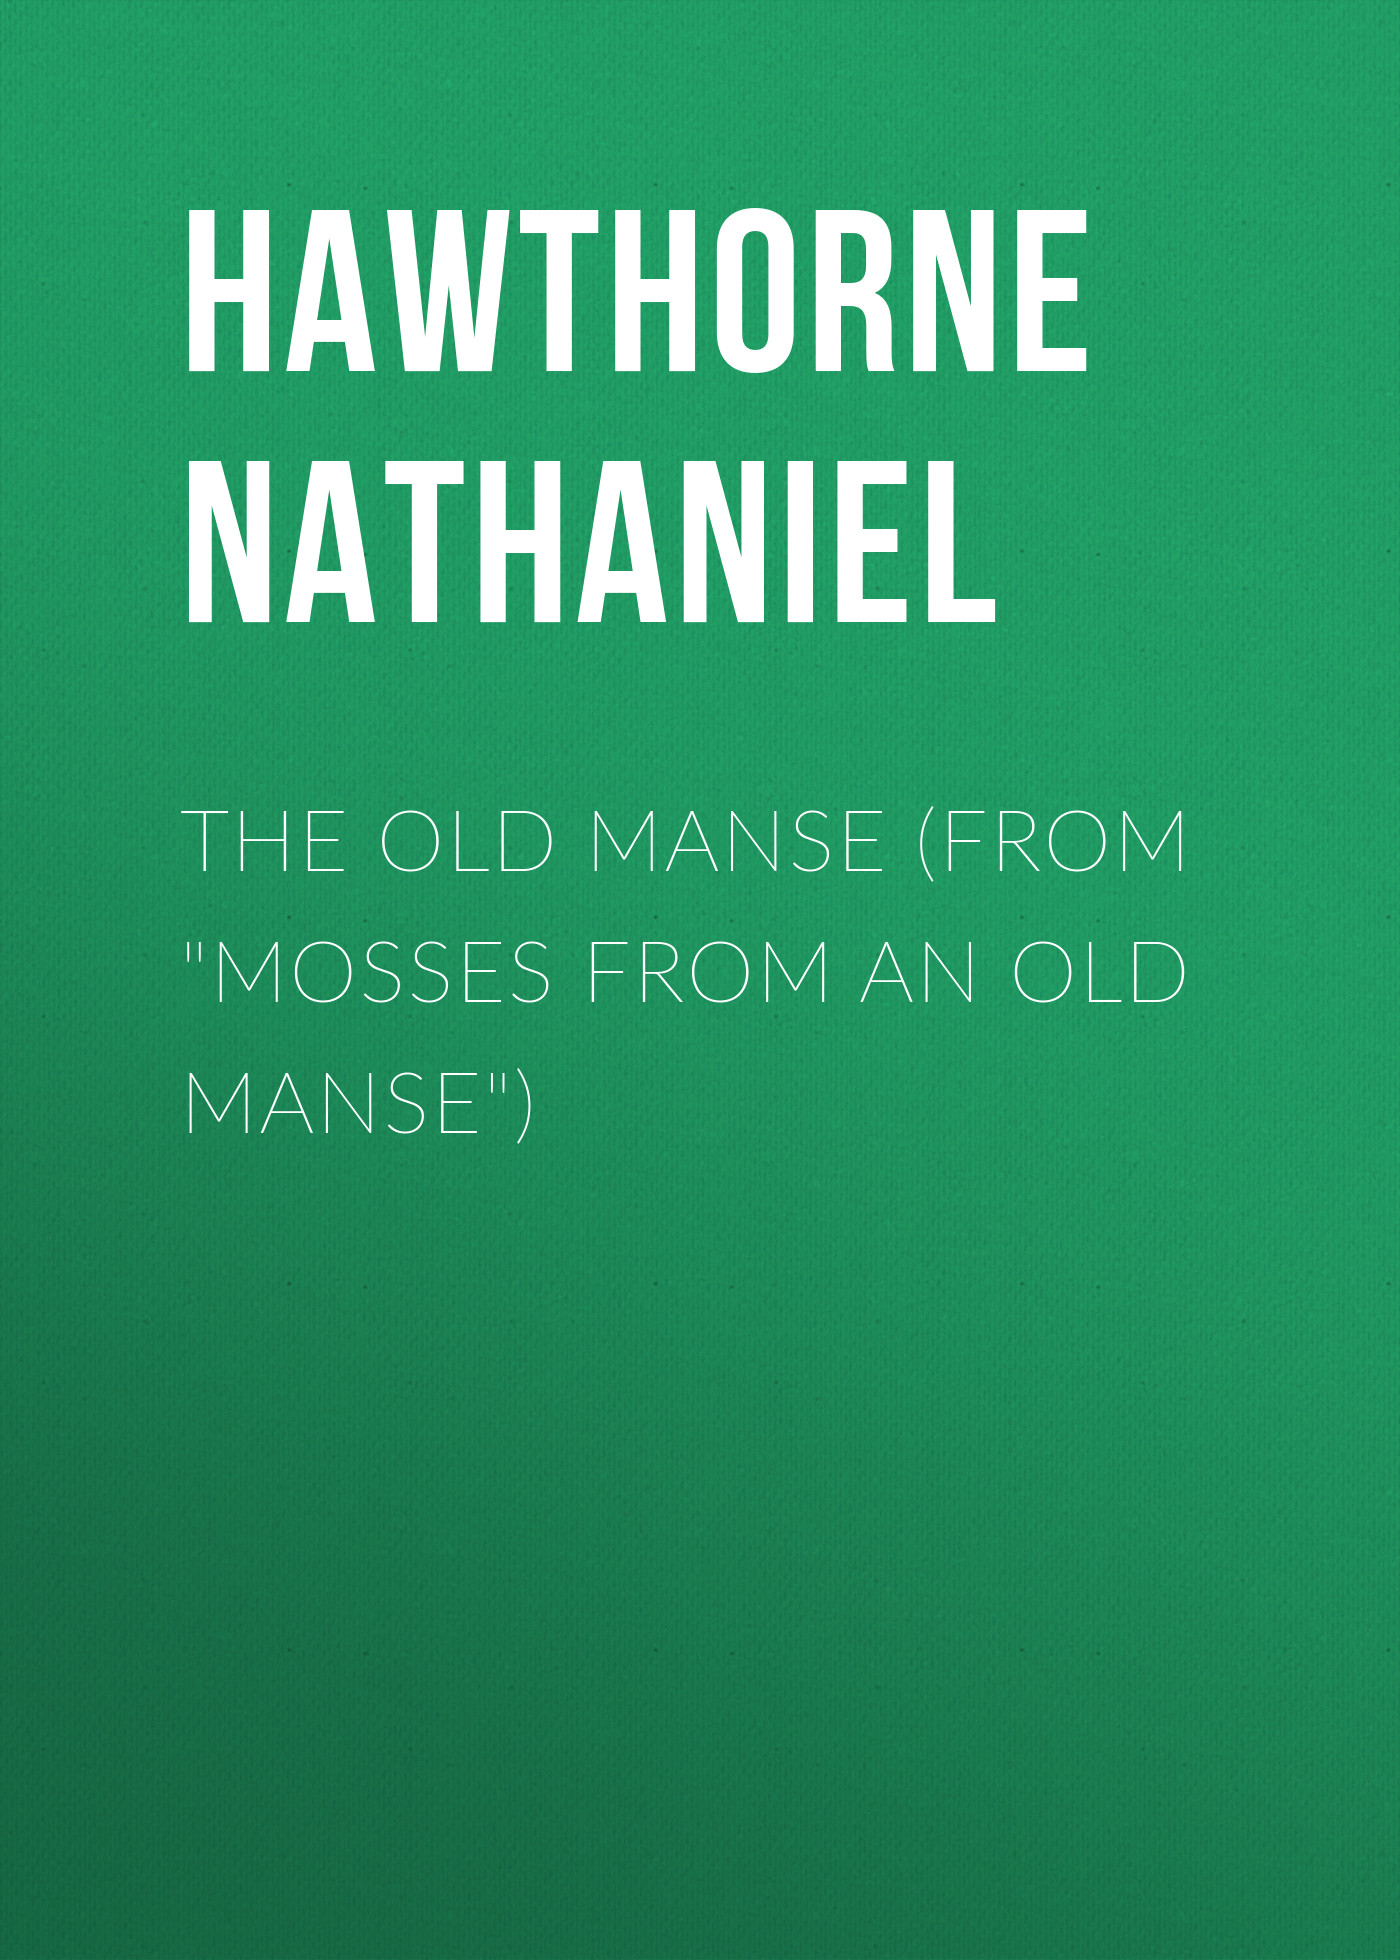 Hawthorne Nathaniel The Old Manse (From Mosses from an Old Manse) hawthorne nathaniel the hall of fantasy from mosses from an old manse